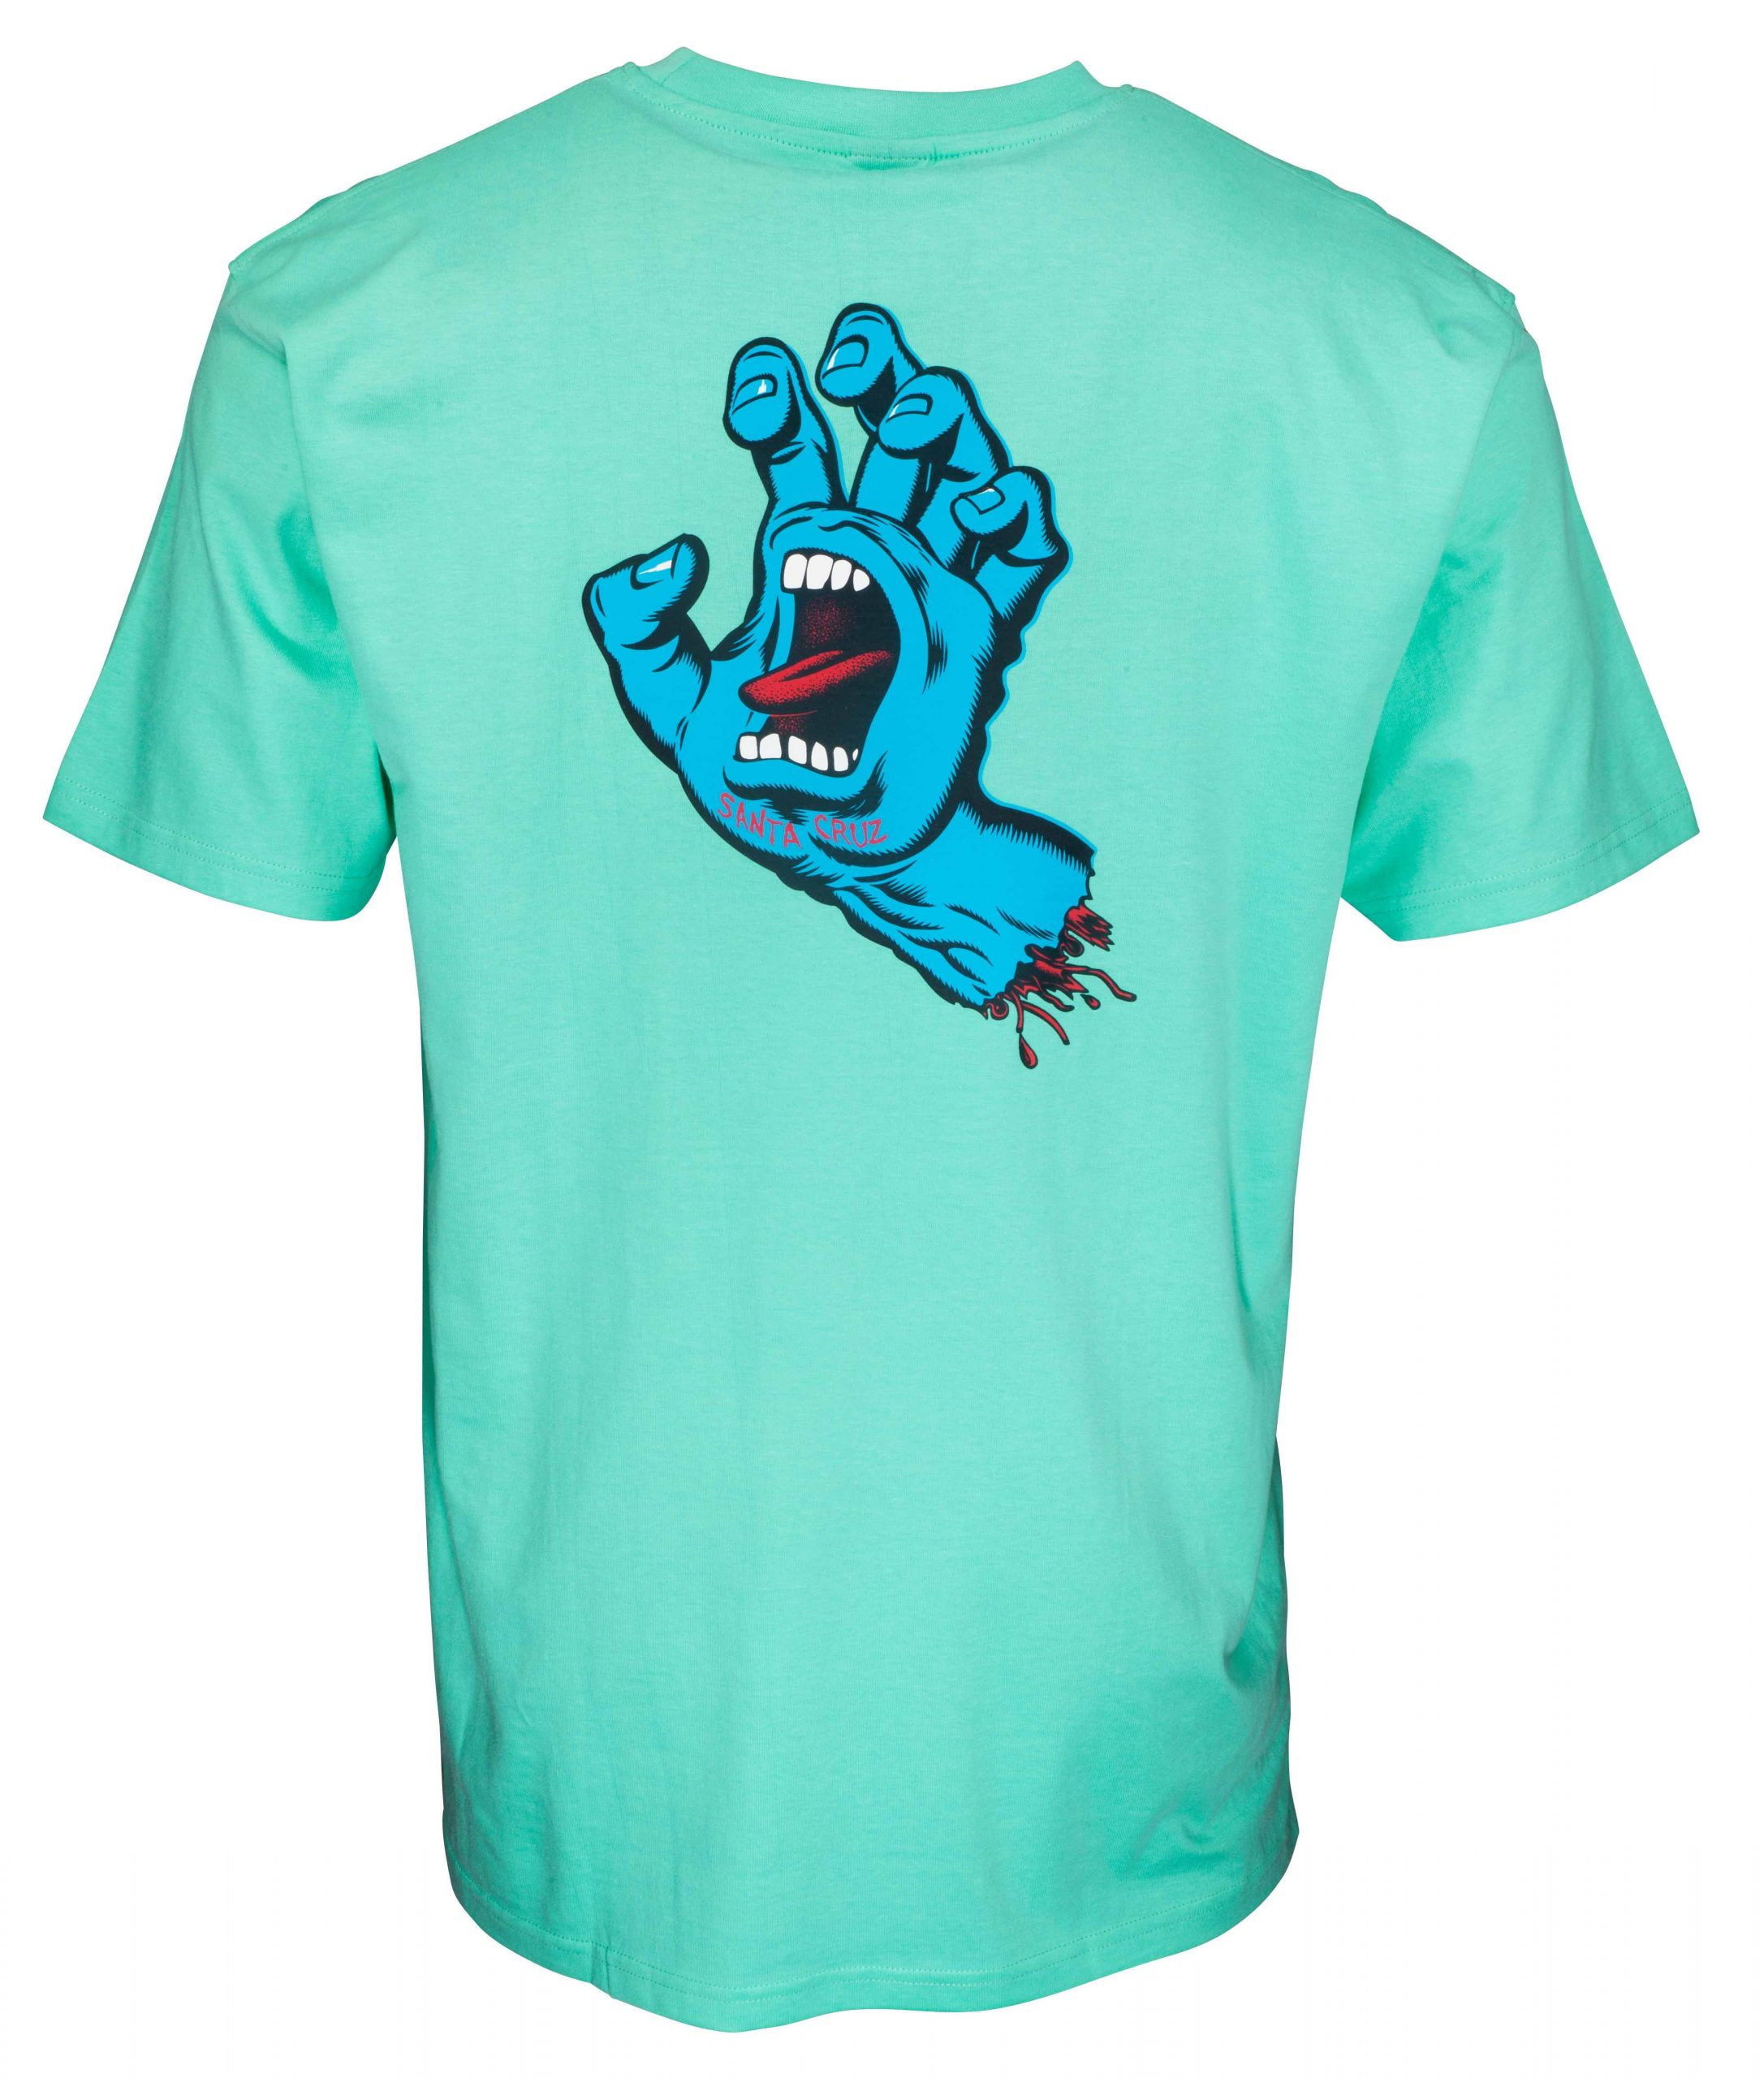 SCA SP21 SS TEE Screaming Hand Chest Jade Green BACK